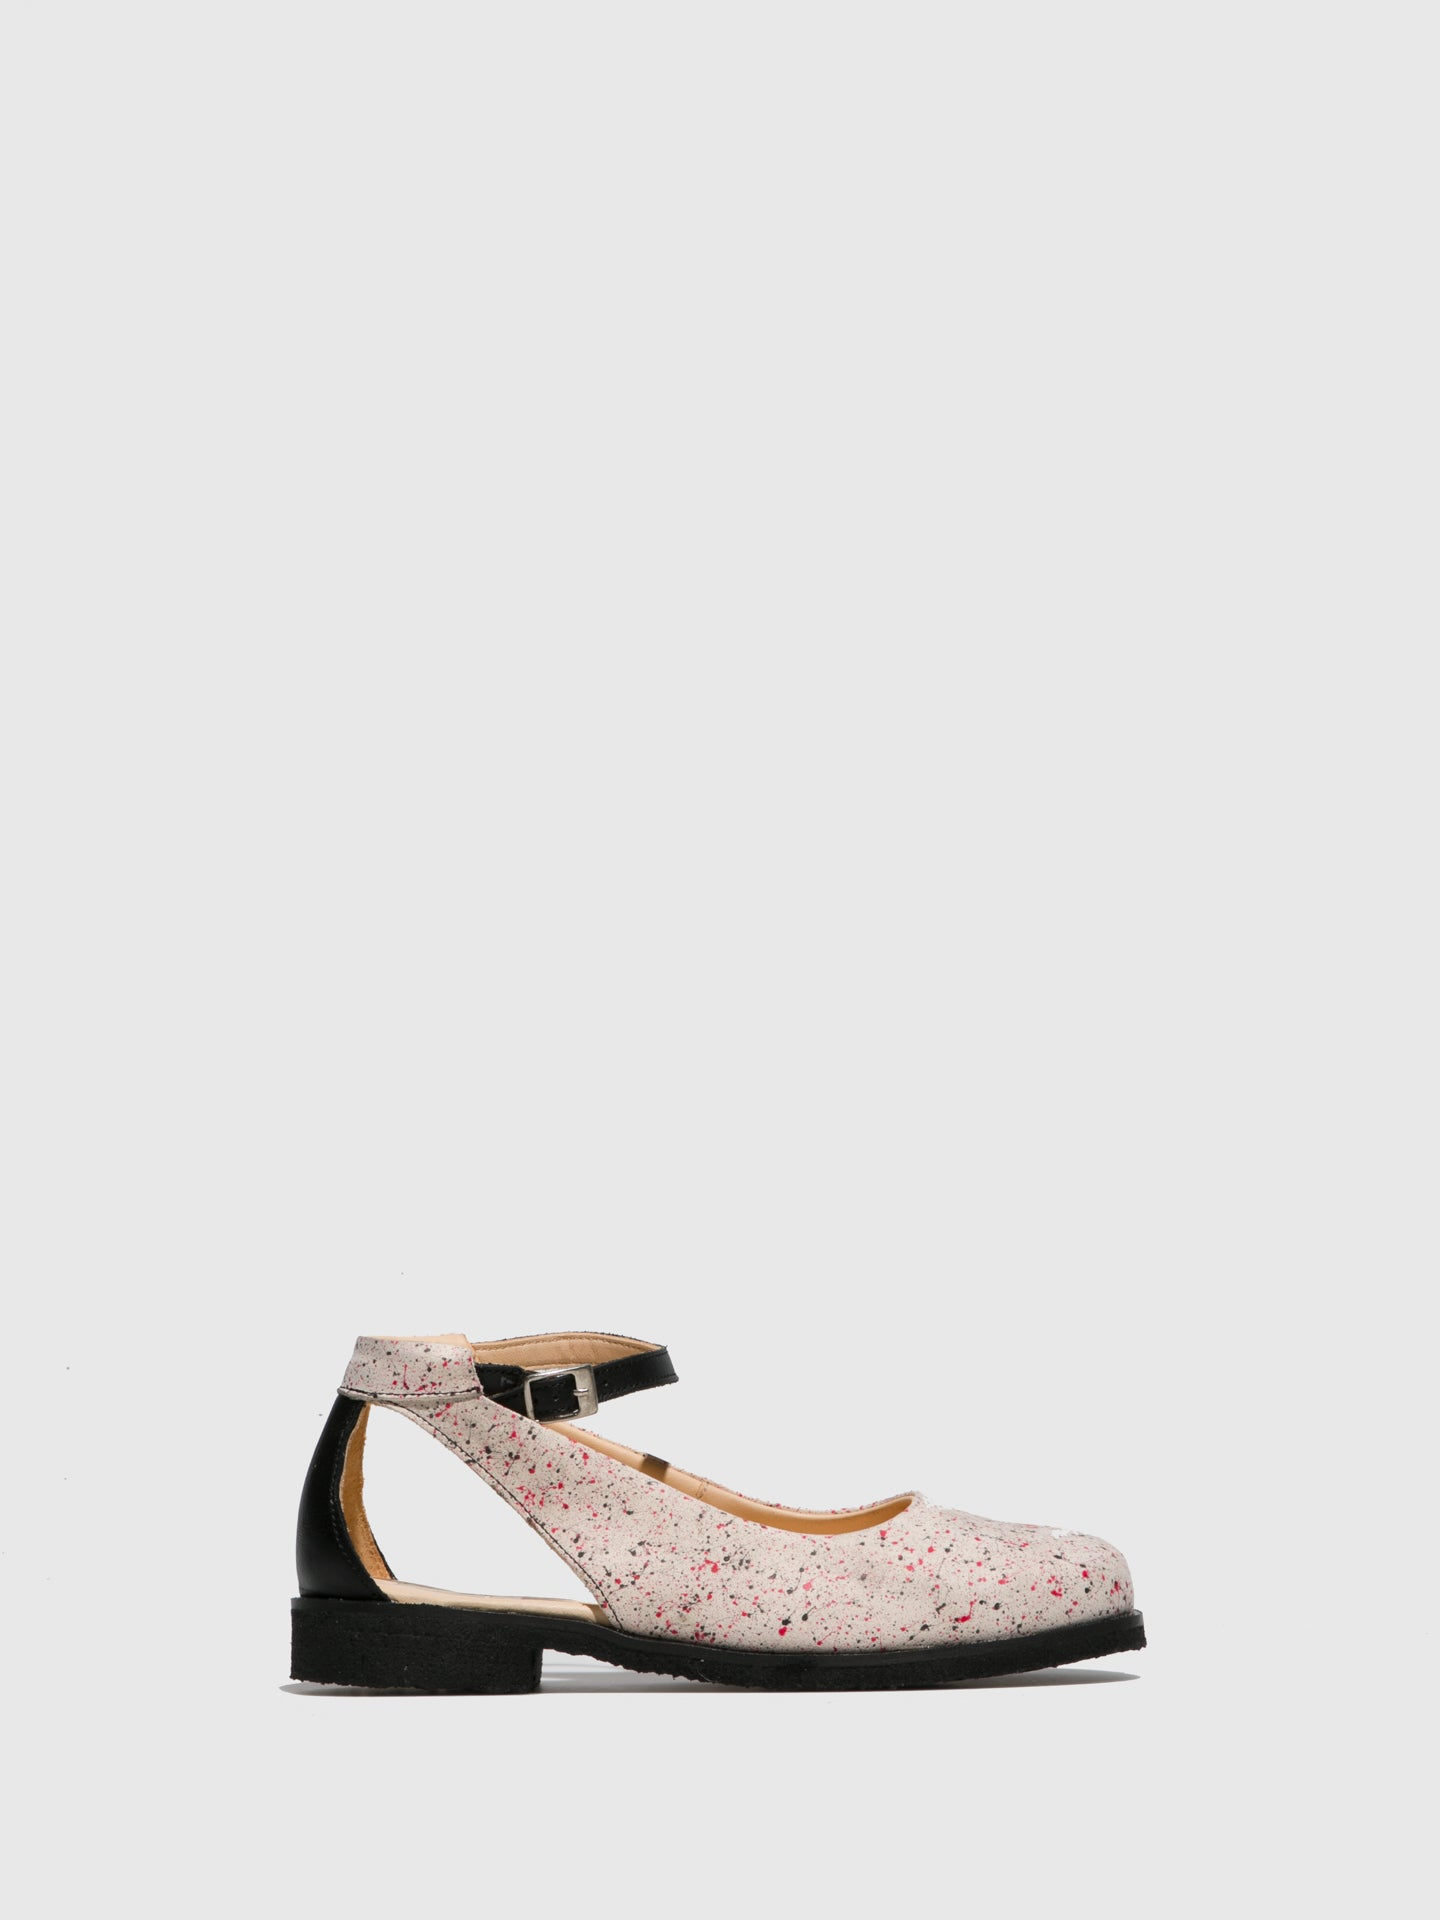 Marita Moreno Multicolor Flat Shoes